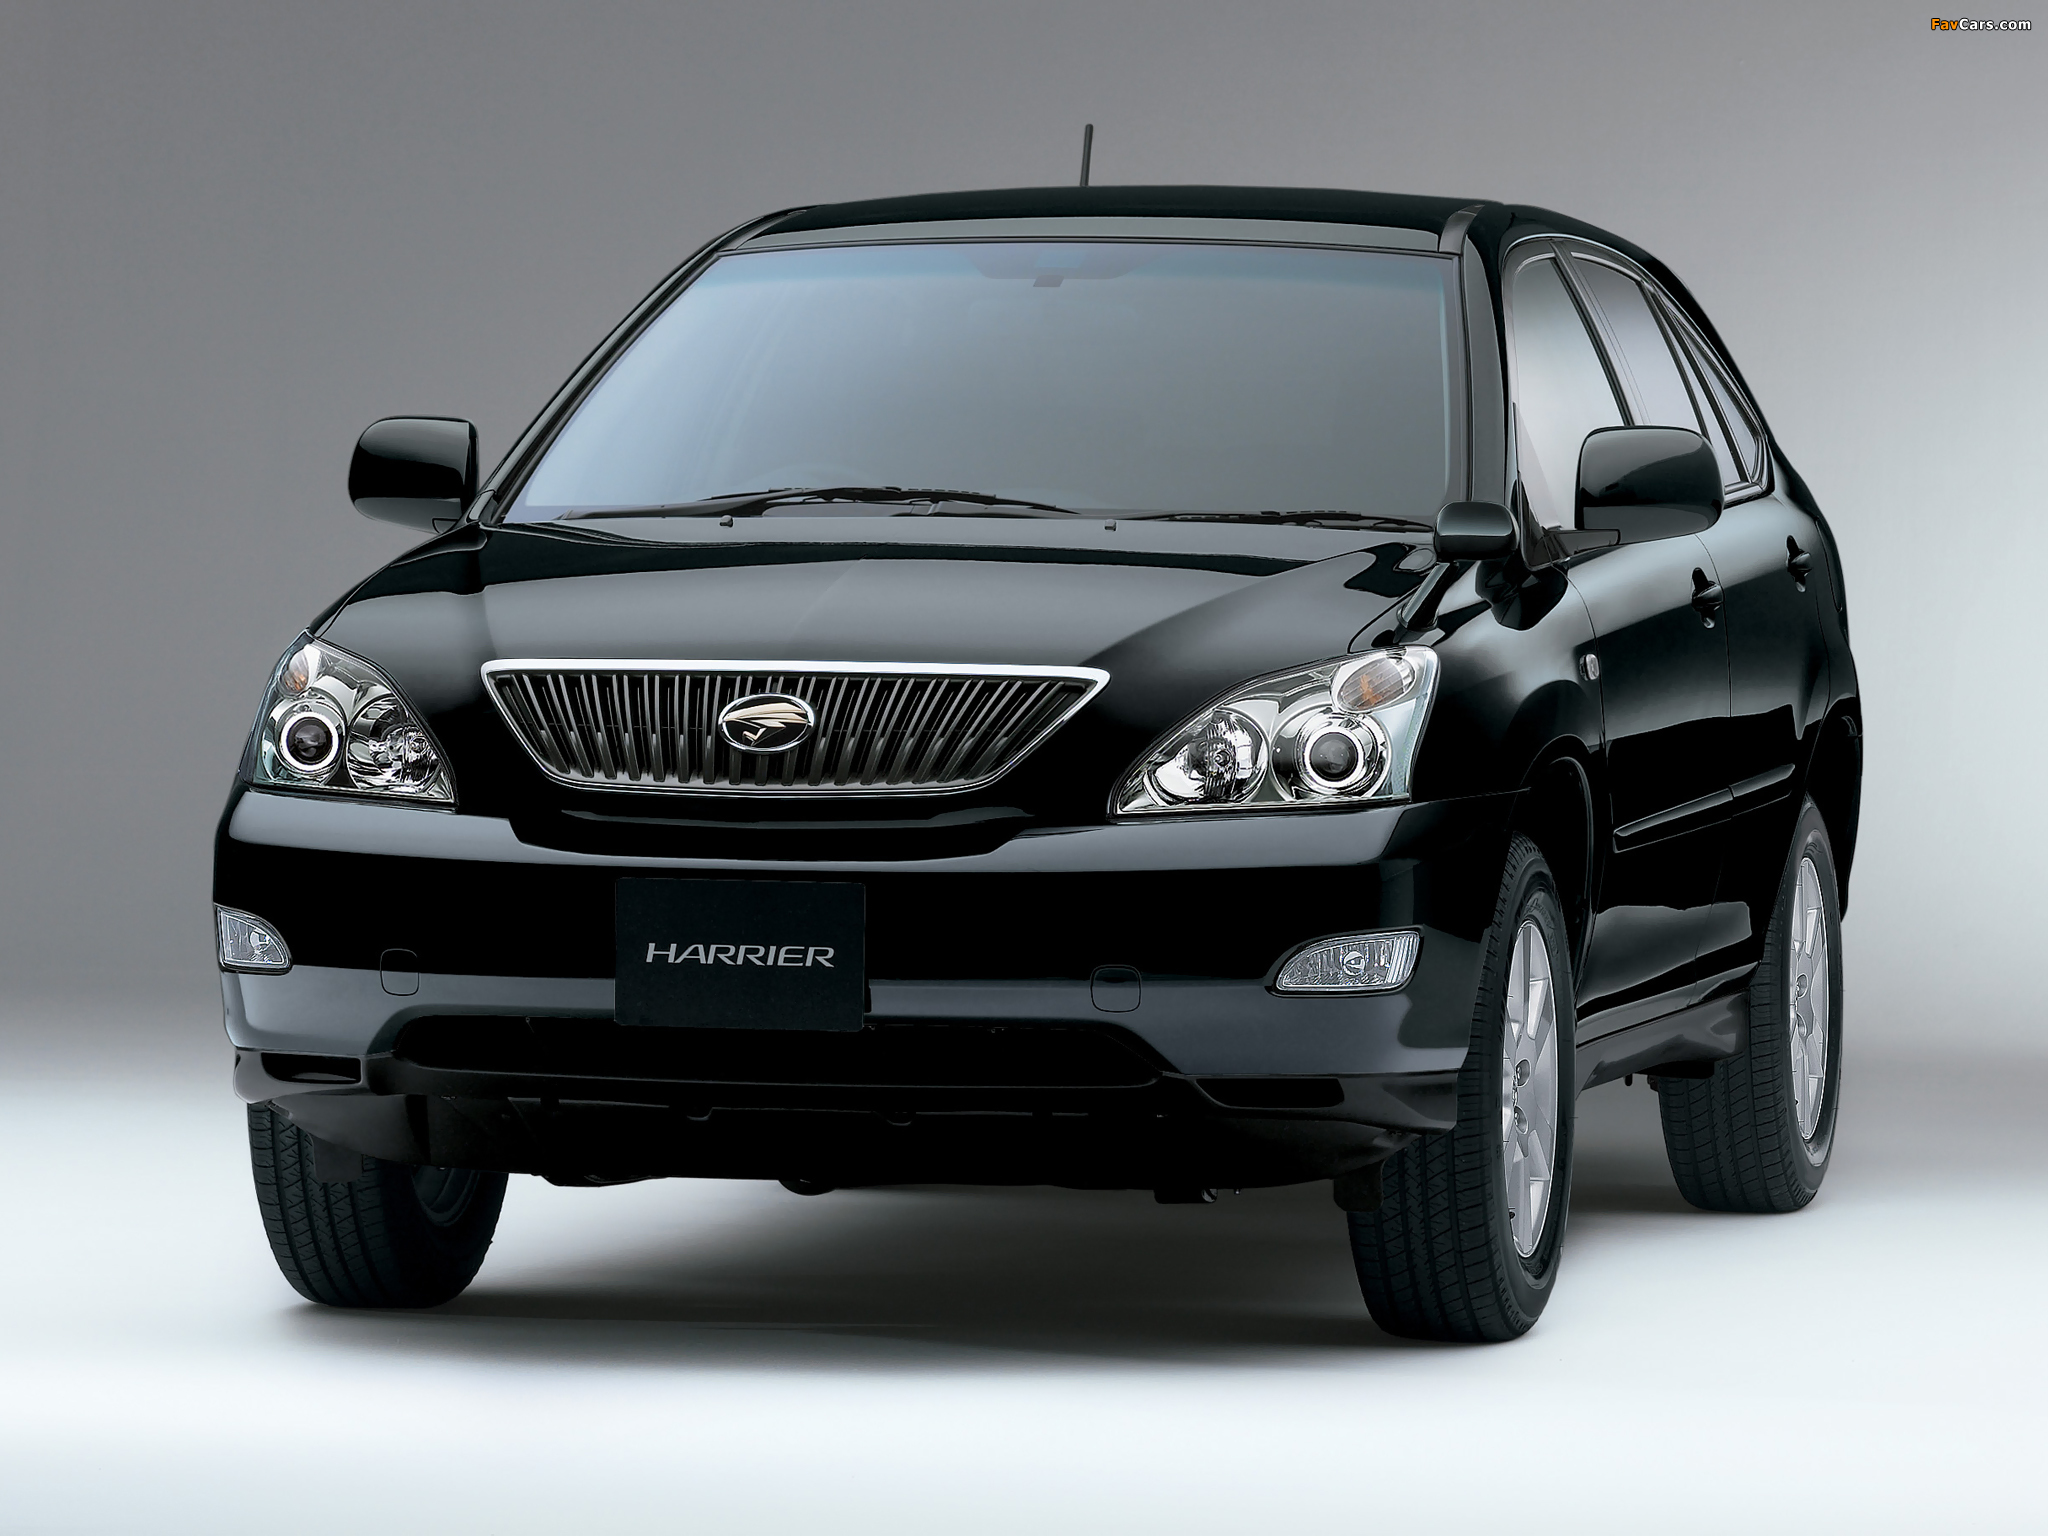 Toyota Harrier 2003 Wallpapers 2048x1536